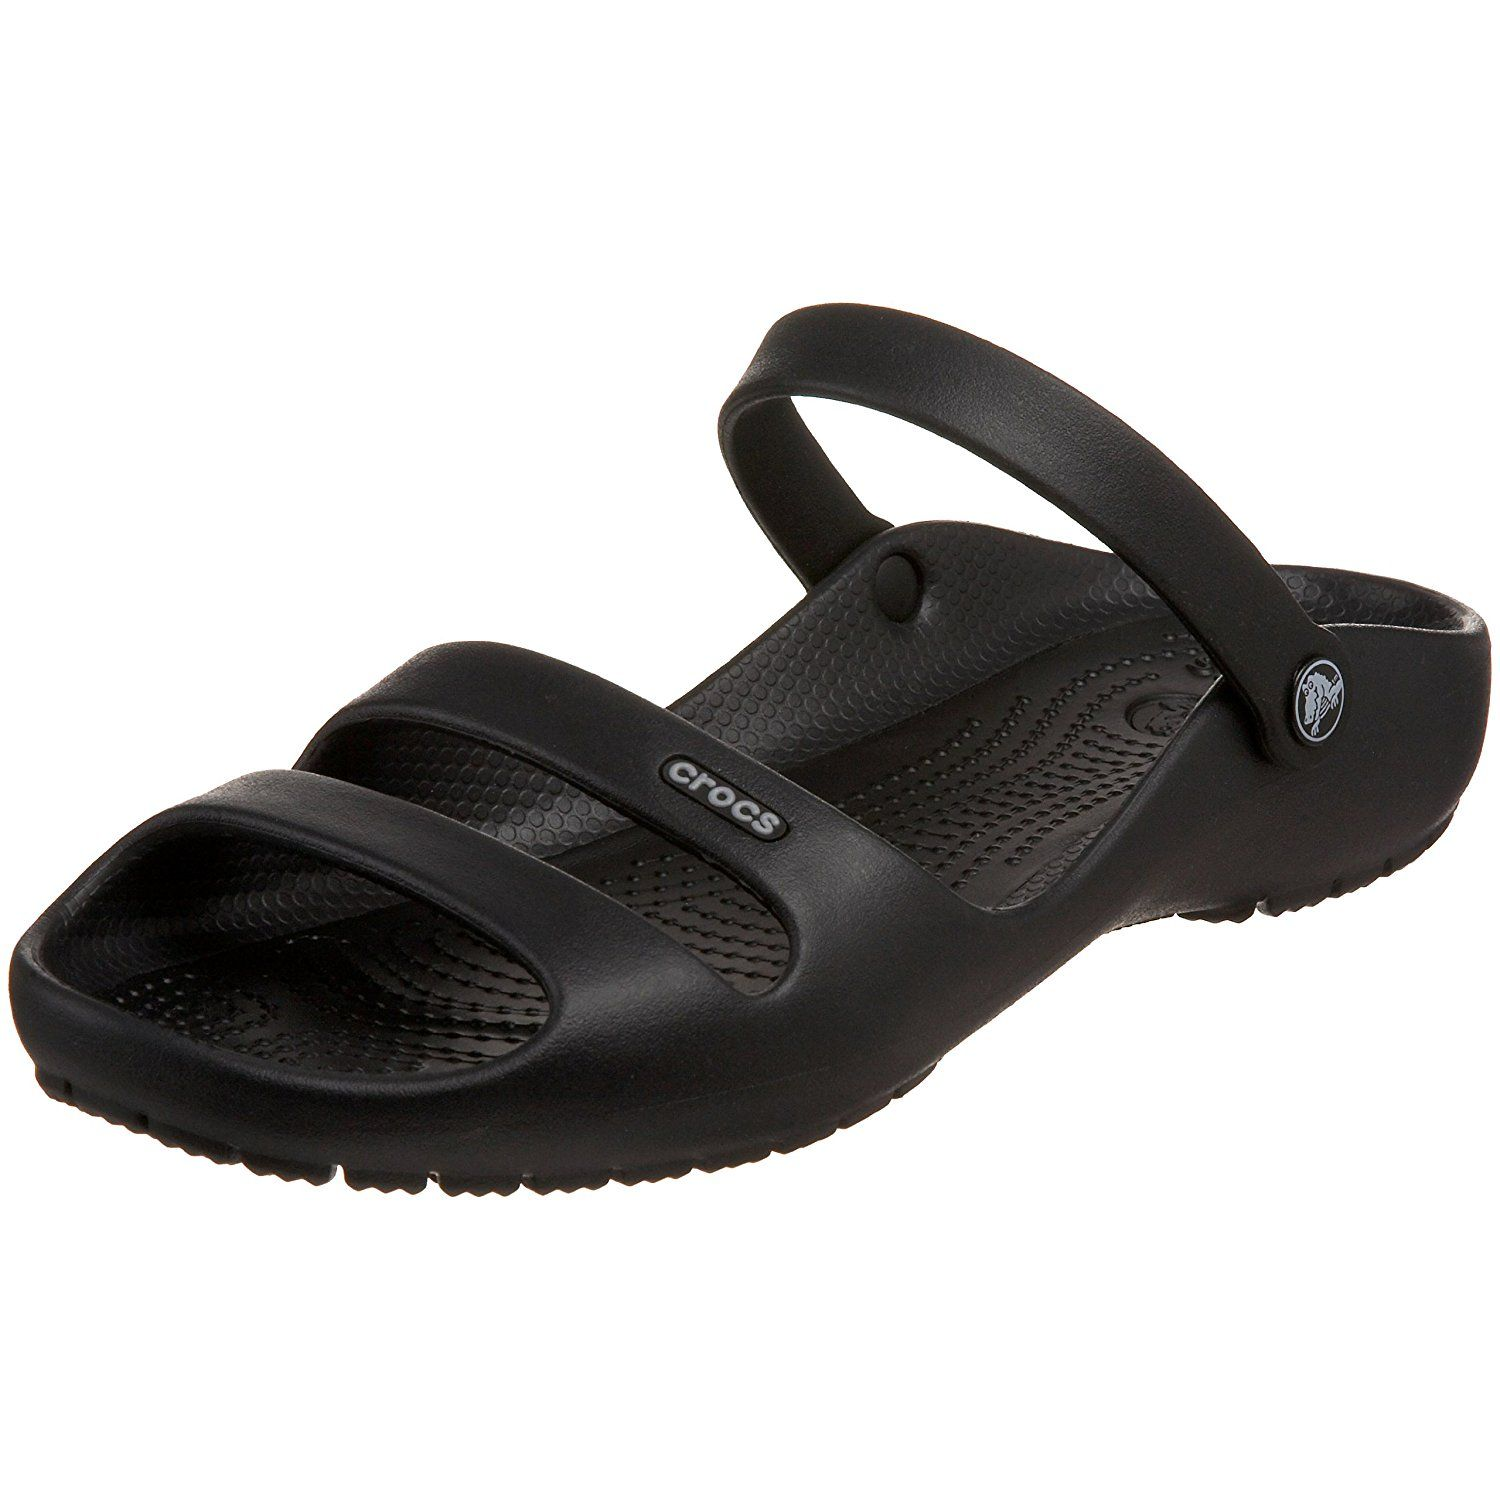 321e2635bd9 crocs Women s Cleo II Sandal    Insider s special review you can t miss.  Read more   Sandals